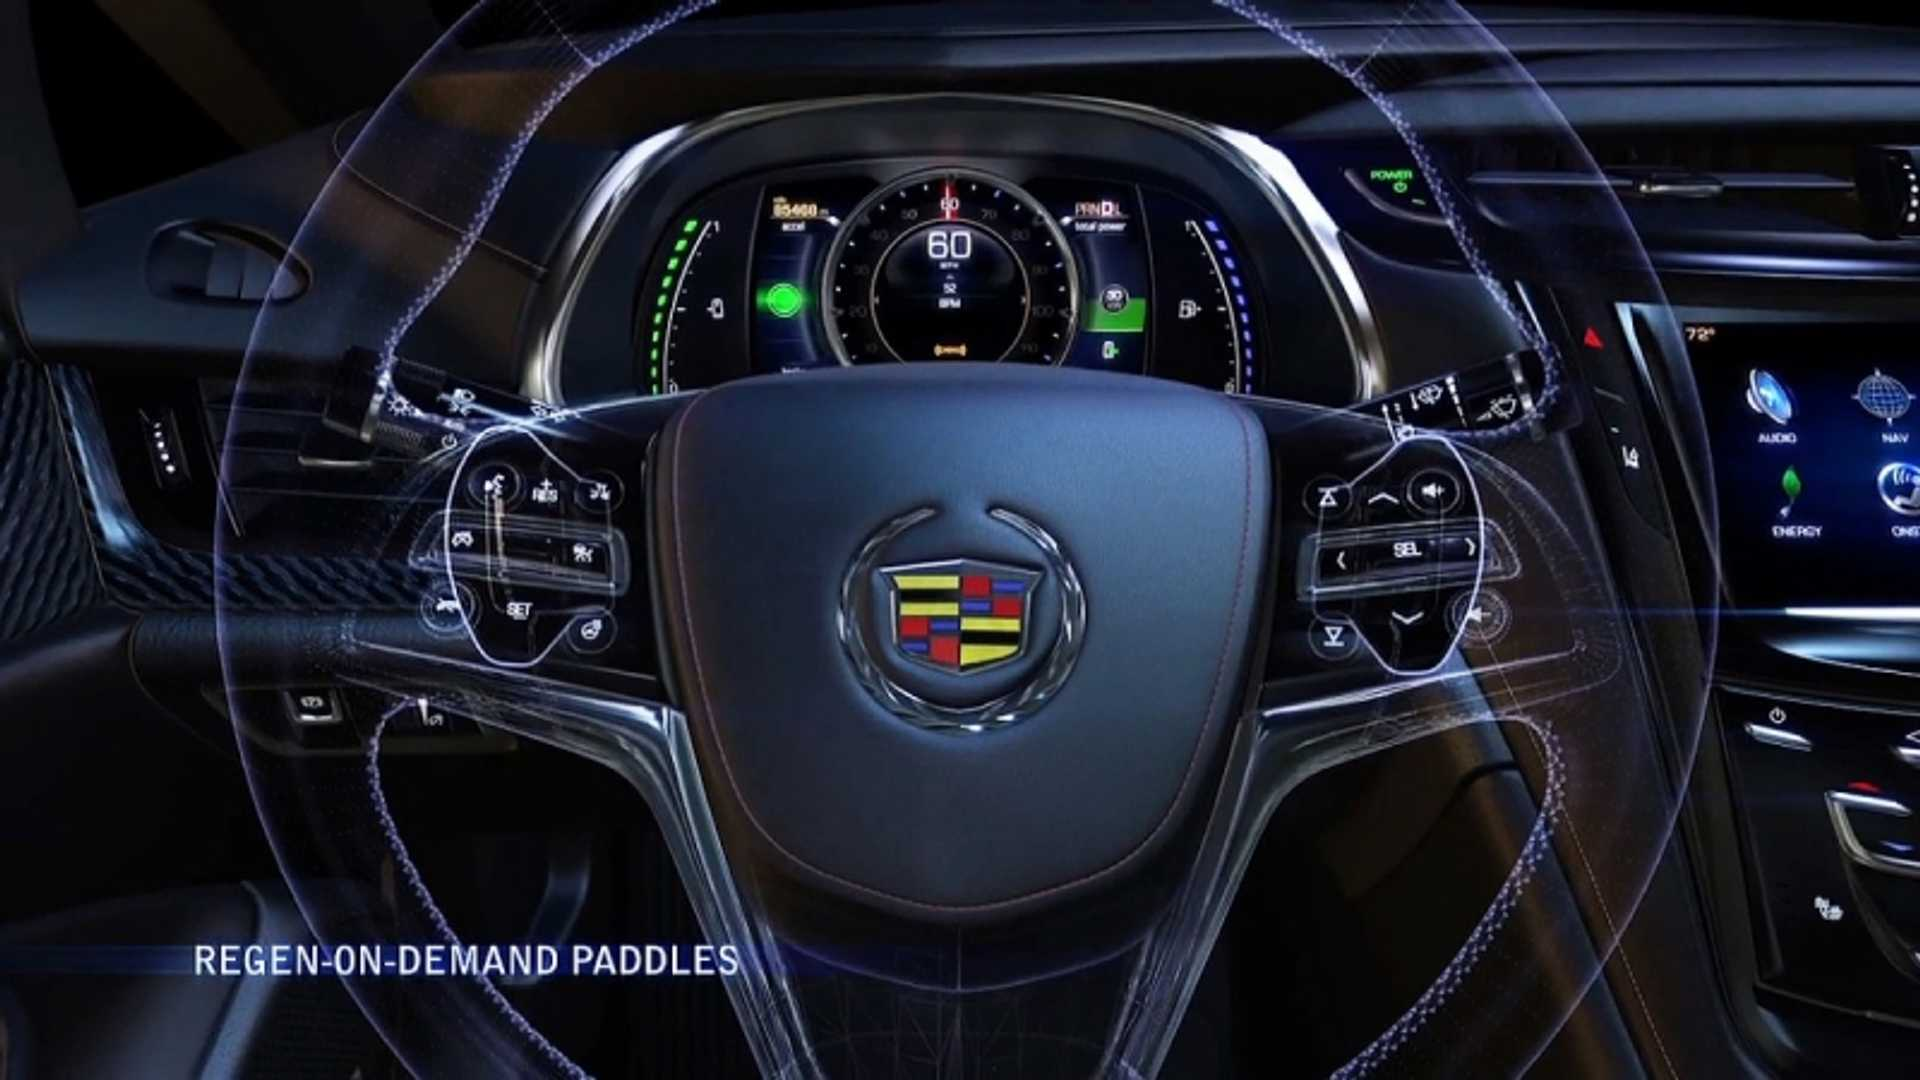 Cadillac Elr Coming With Paddle Shifter Operated Regen On Demand Video